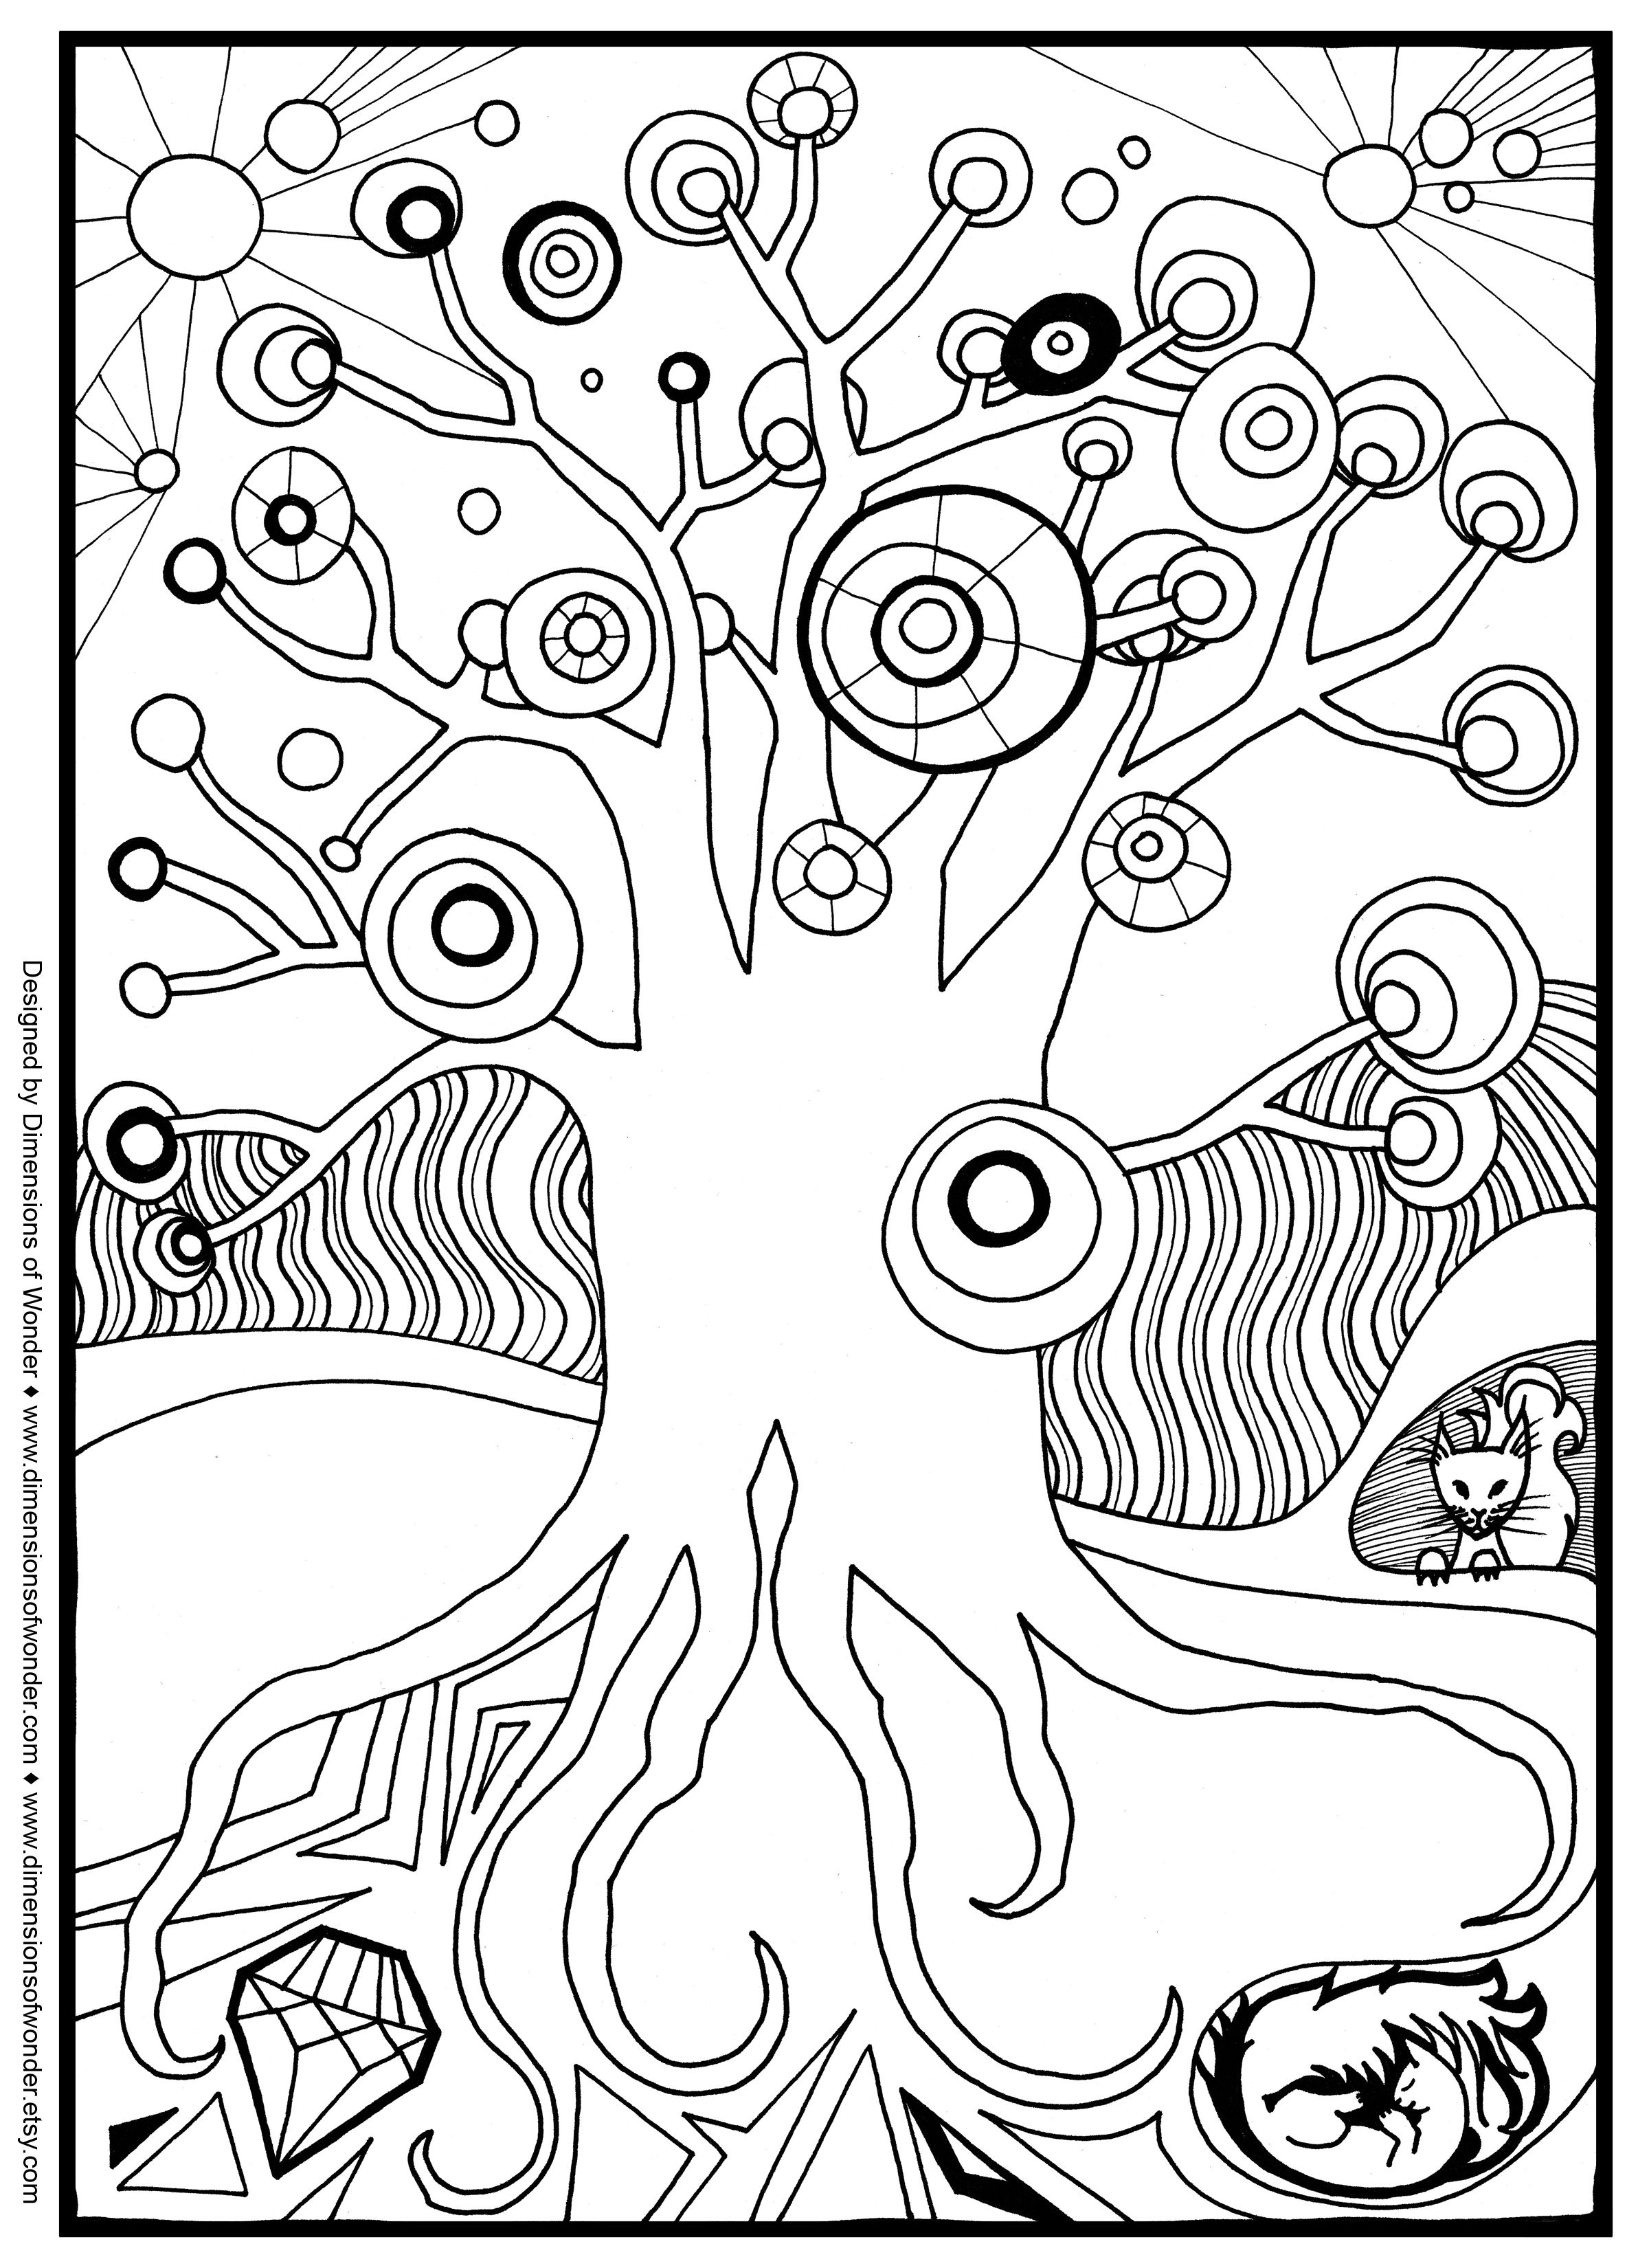 2400x3300 In Free Printable Coloring Pages Adults Only Coloring Pages